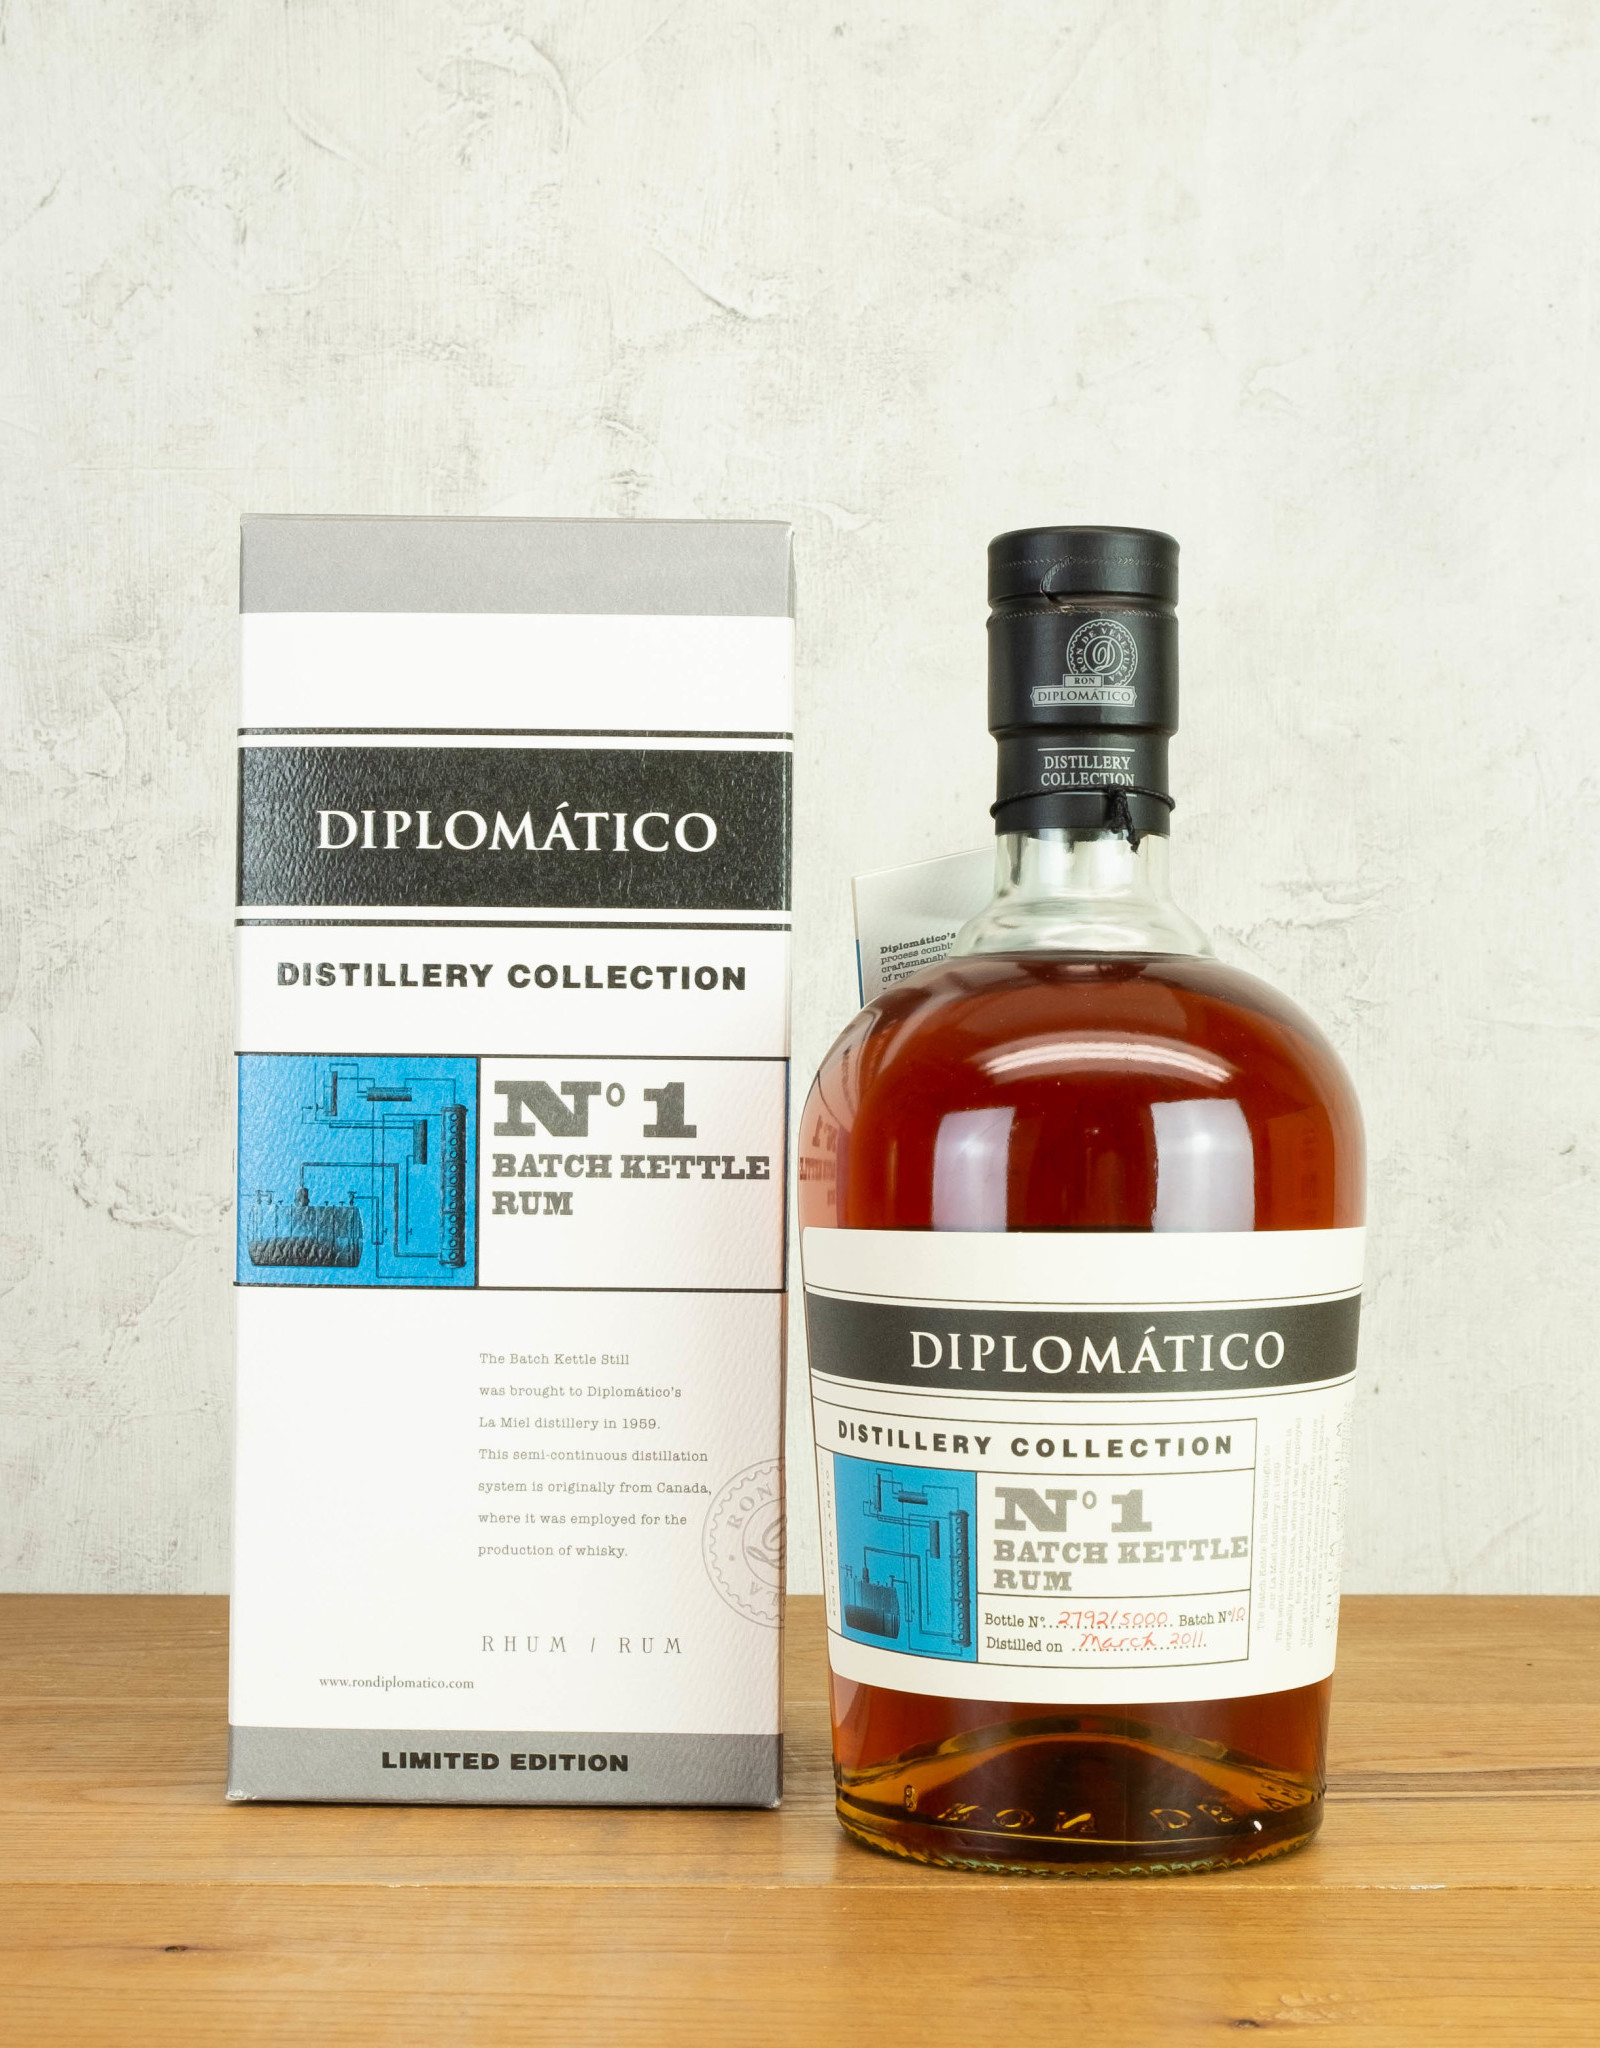 Diplomatico Distillery Collection No 1 Kettle Rum